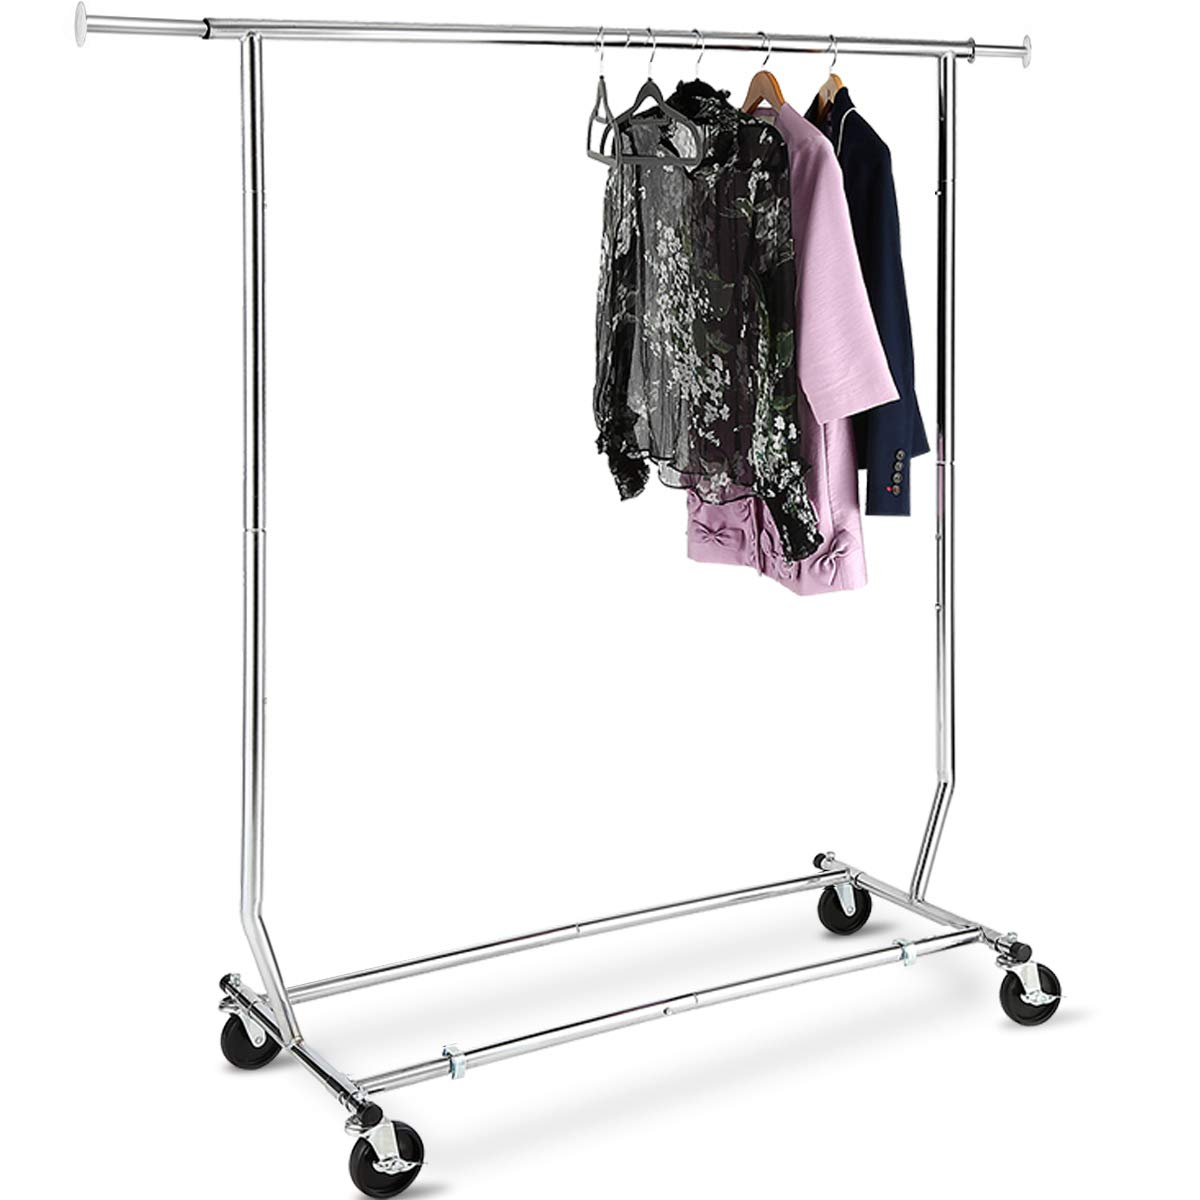 TomCare Garment Rack Double Clothes Racks Adjustable Clothing Rack Extensible Clothes Hanging Rack Commercial Grade Garment Rolling Racks for Hanging Heavy Duty Stainless Steel Garment Rack on Wheels E-2002